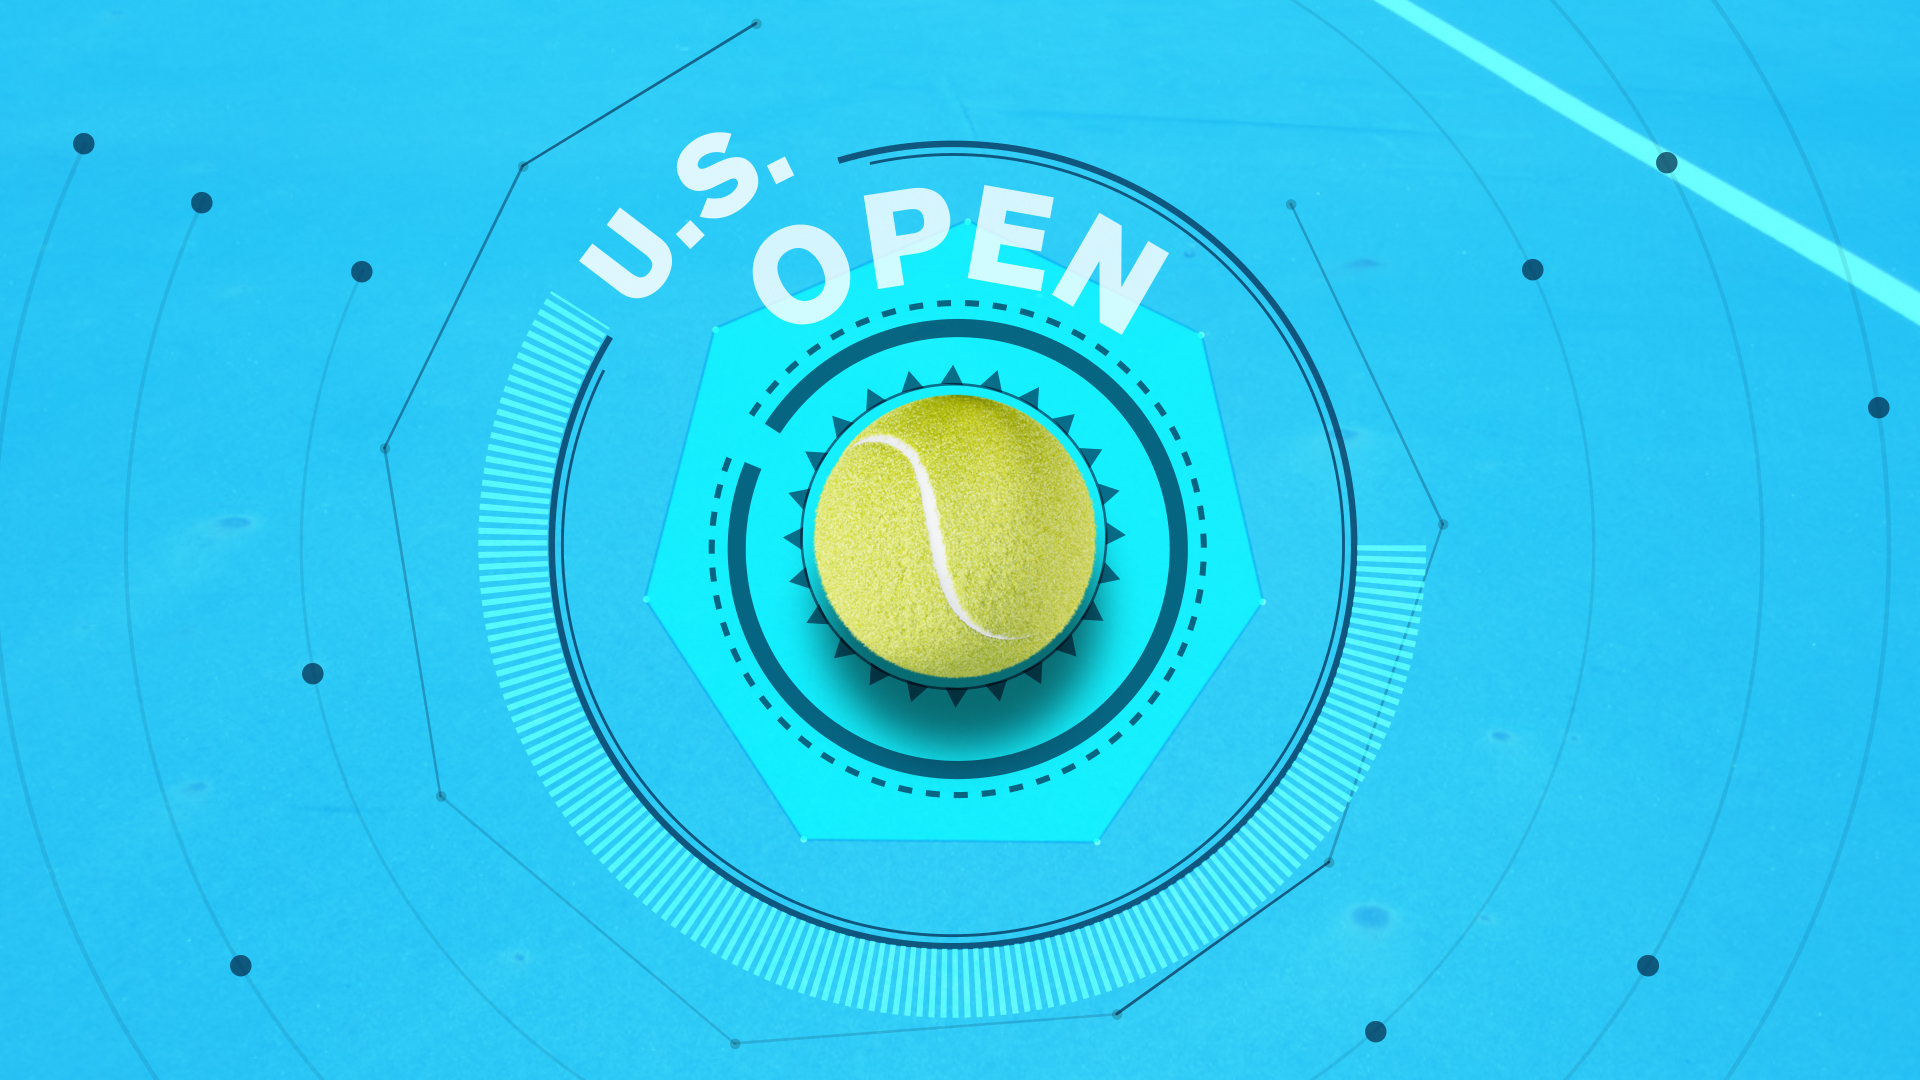 US Open sports broadcasting pack